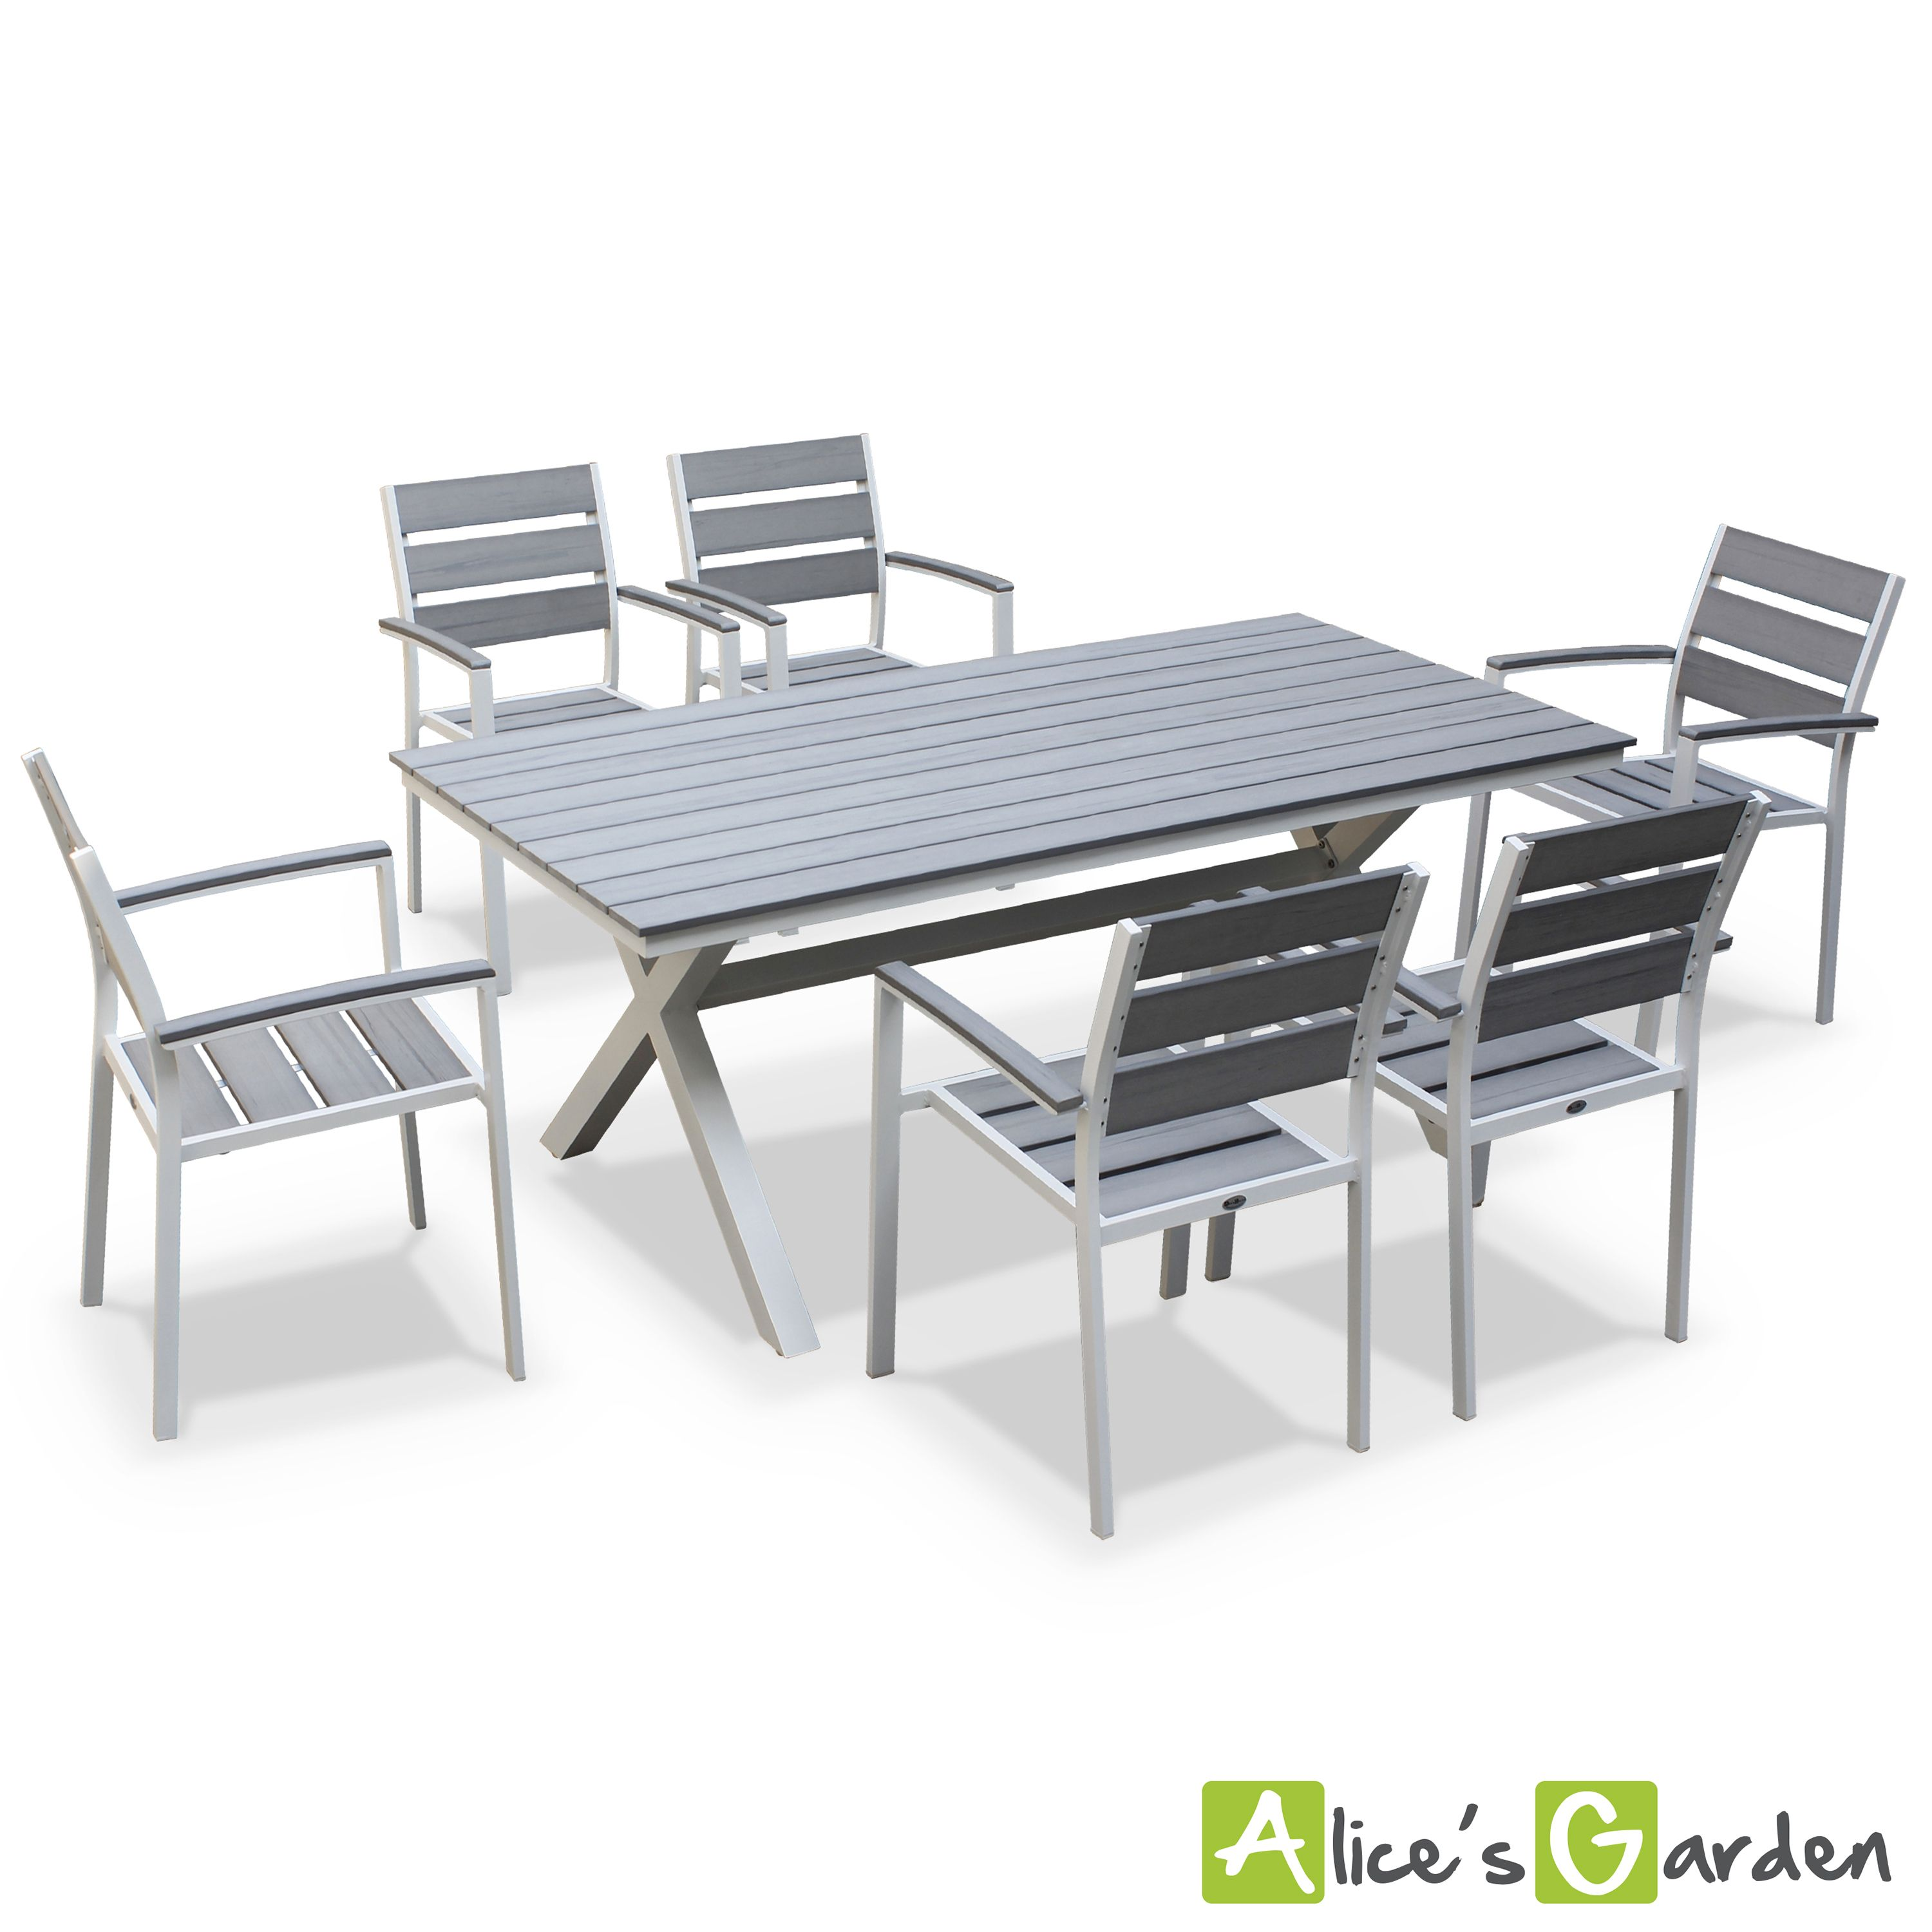 Salon Jardin 6 Places | La Crau Table De Jardin 6 Places Http Www Alicesgarden Fr